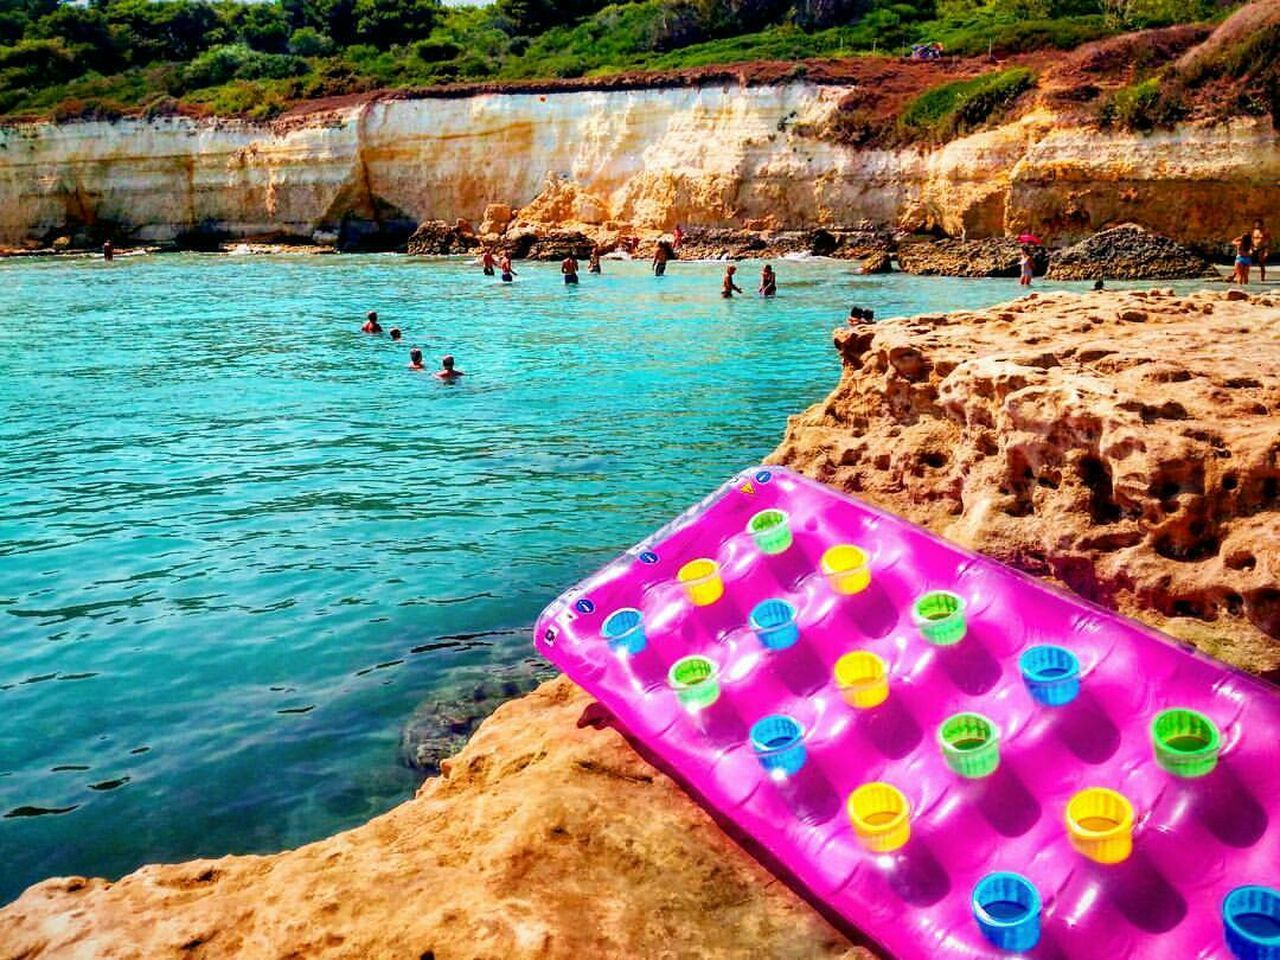 Salento Puglia Water Tranquility Pink Color Sea Coastline Tourism Non-urban Scene Nature Multi Colored Beauty In Nature Riverbank Vacations Colorful Water Tranquility Multi Colored Tranquil Scene Colorful Blue Vibrant Color Scenics Nature Vacations Pink Color First Eyeem Photo